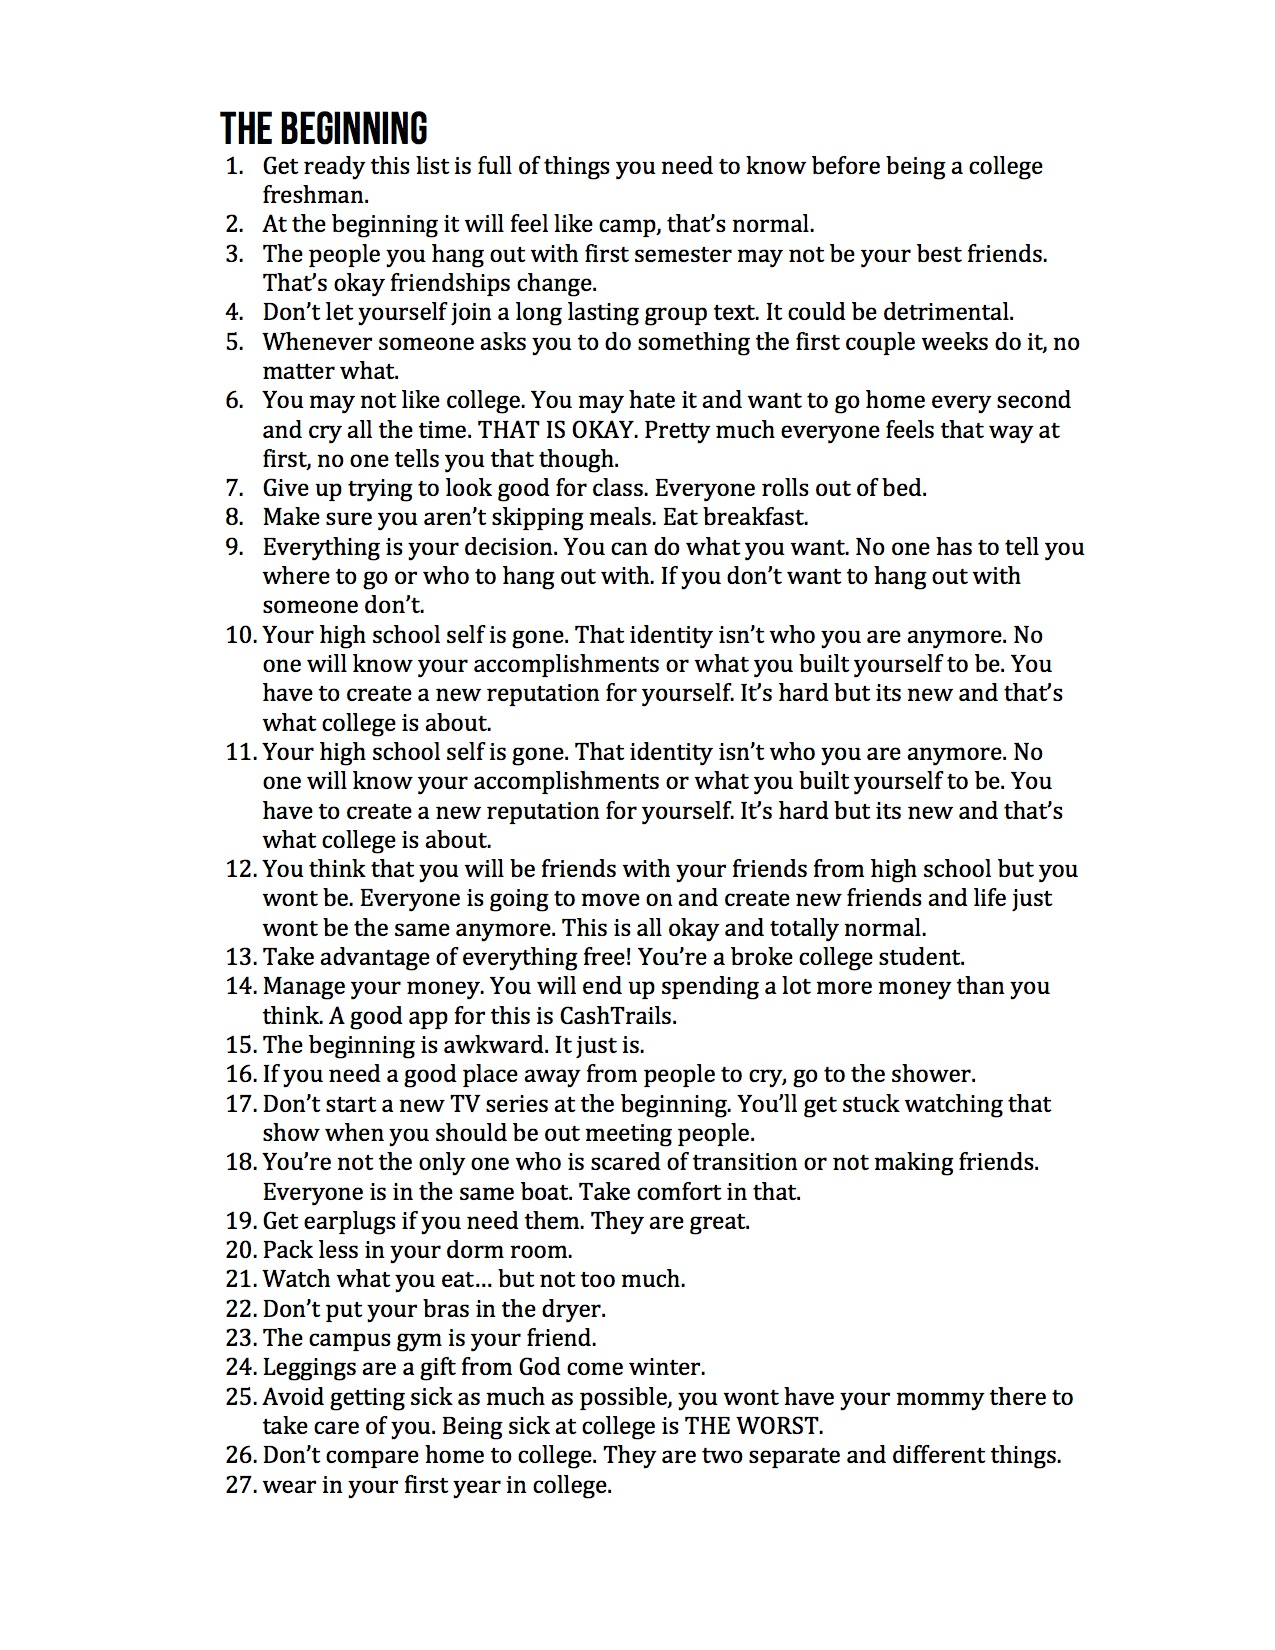 100 things for frehsman 2.jpg